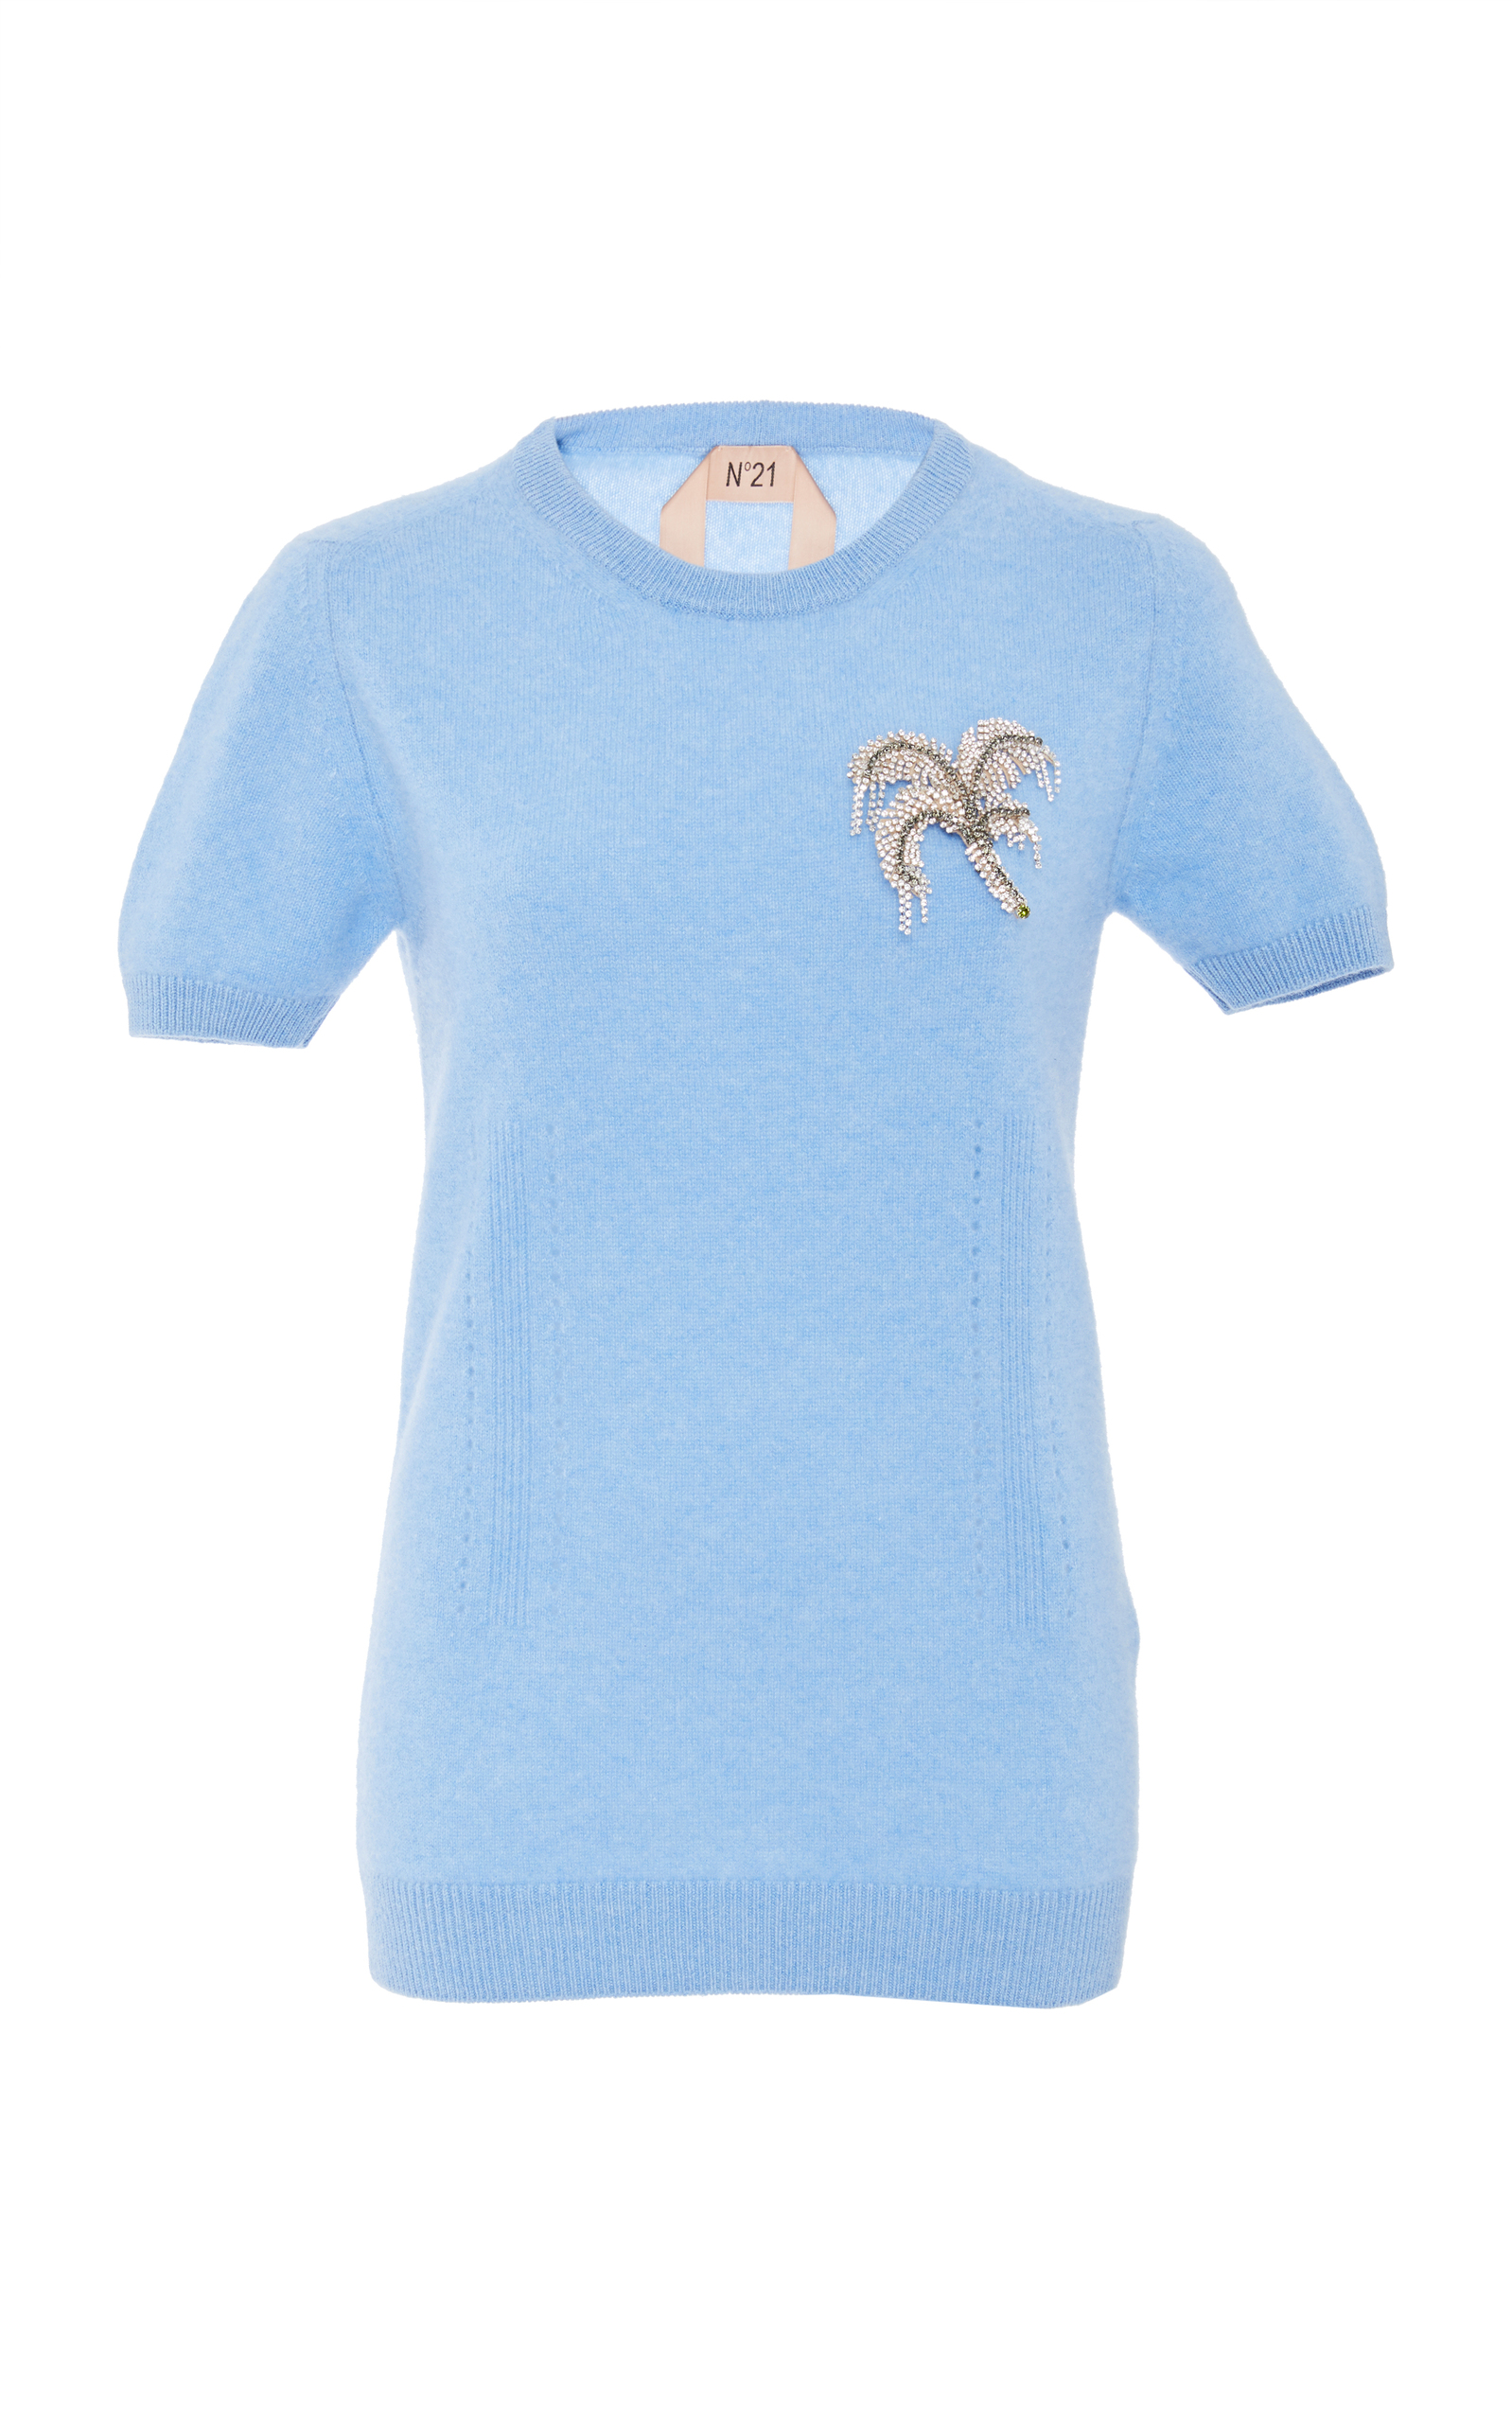 No. 21 - Crystal Appliqué Cashmere Sweater - Womens - Light Blue